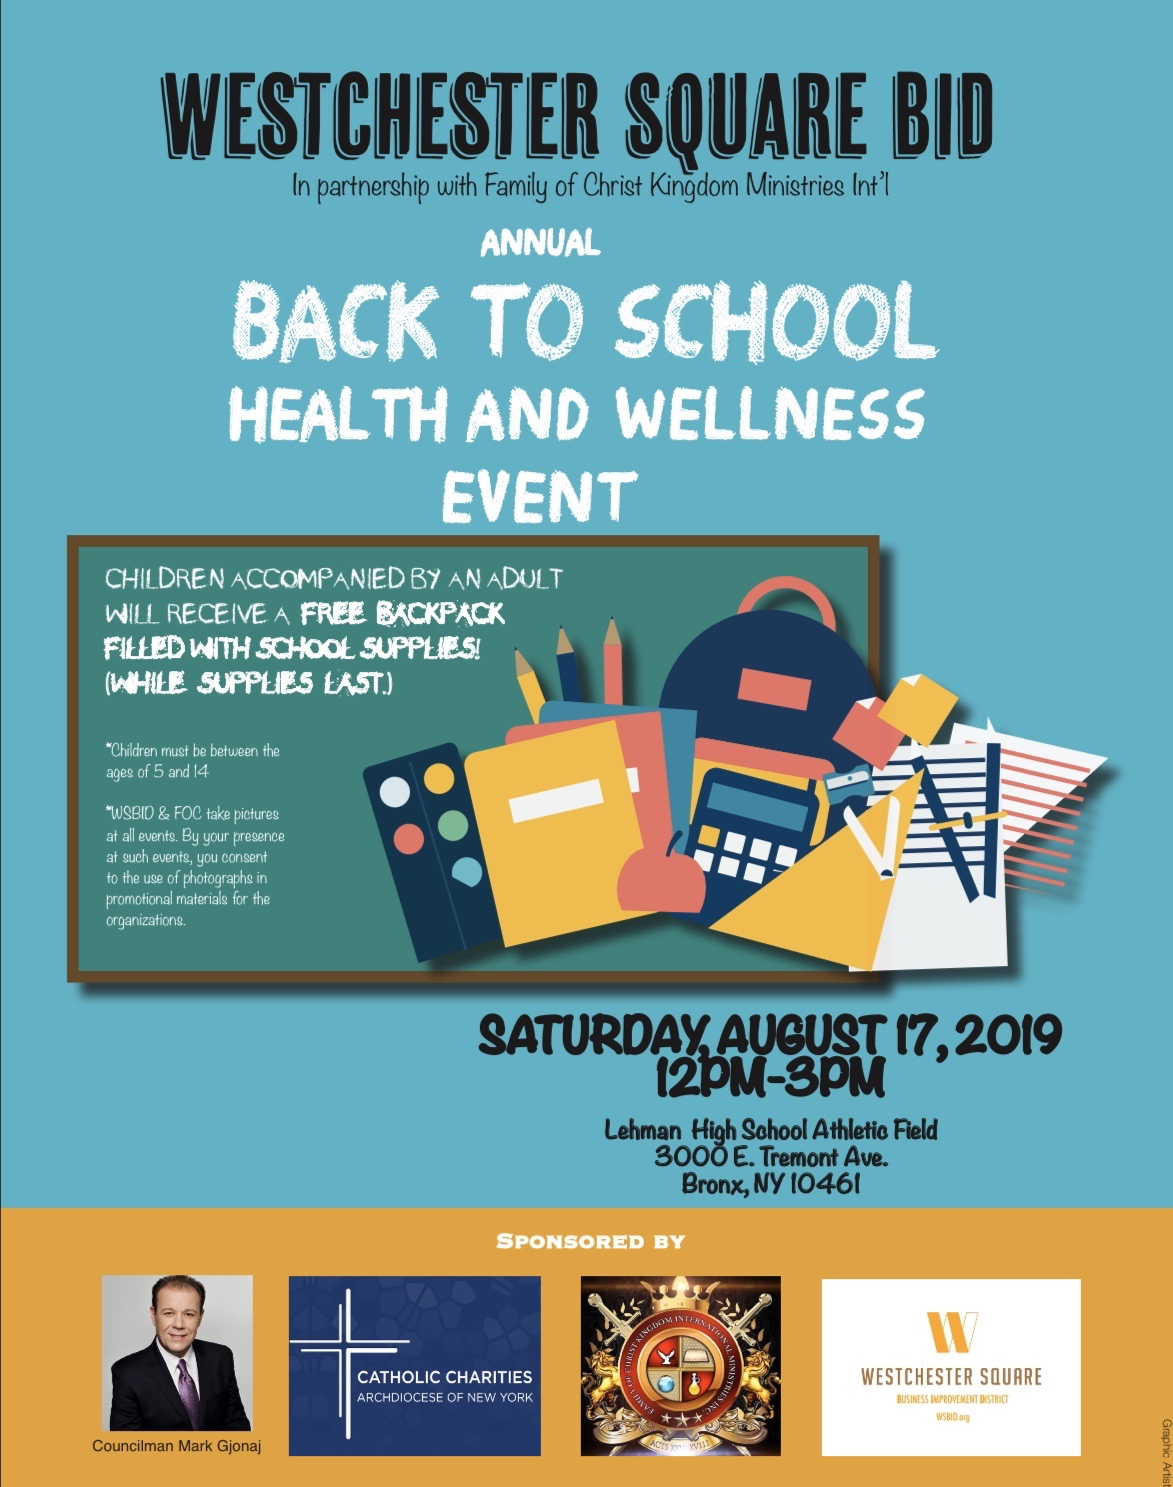 August 17, 2019 - Back to School Event